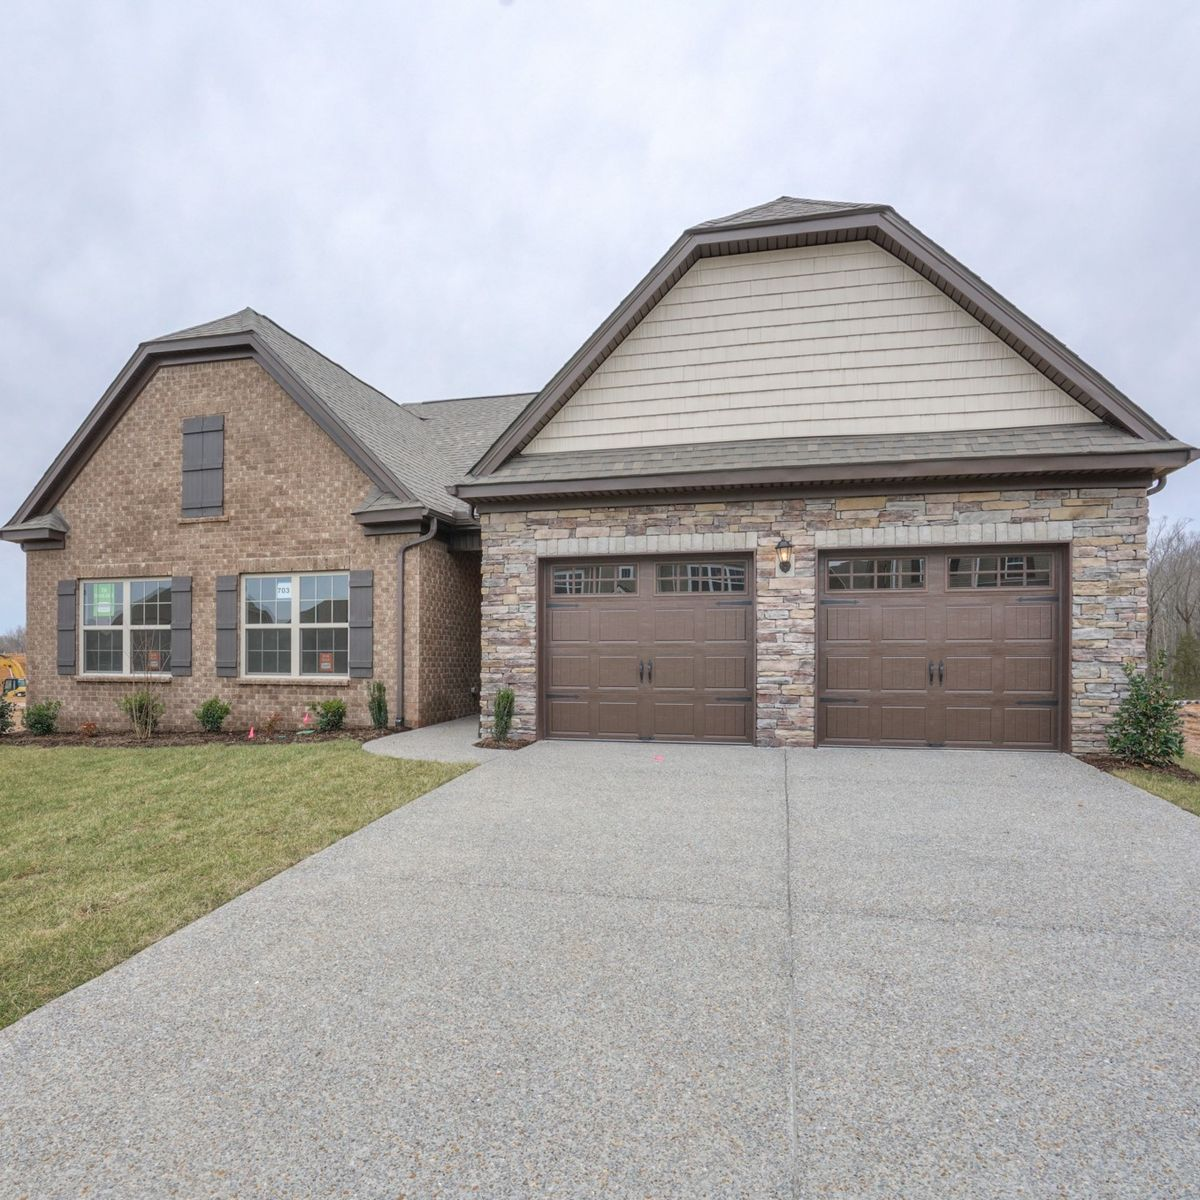 1337 Whispering Oaks Drive, Lot #703